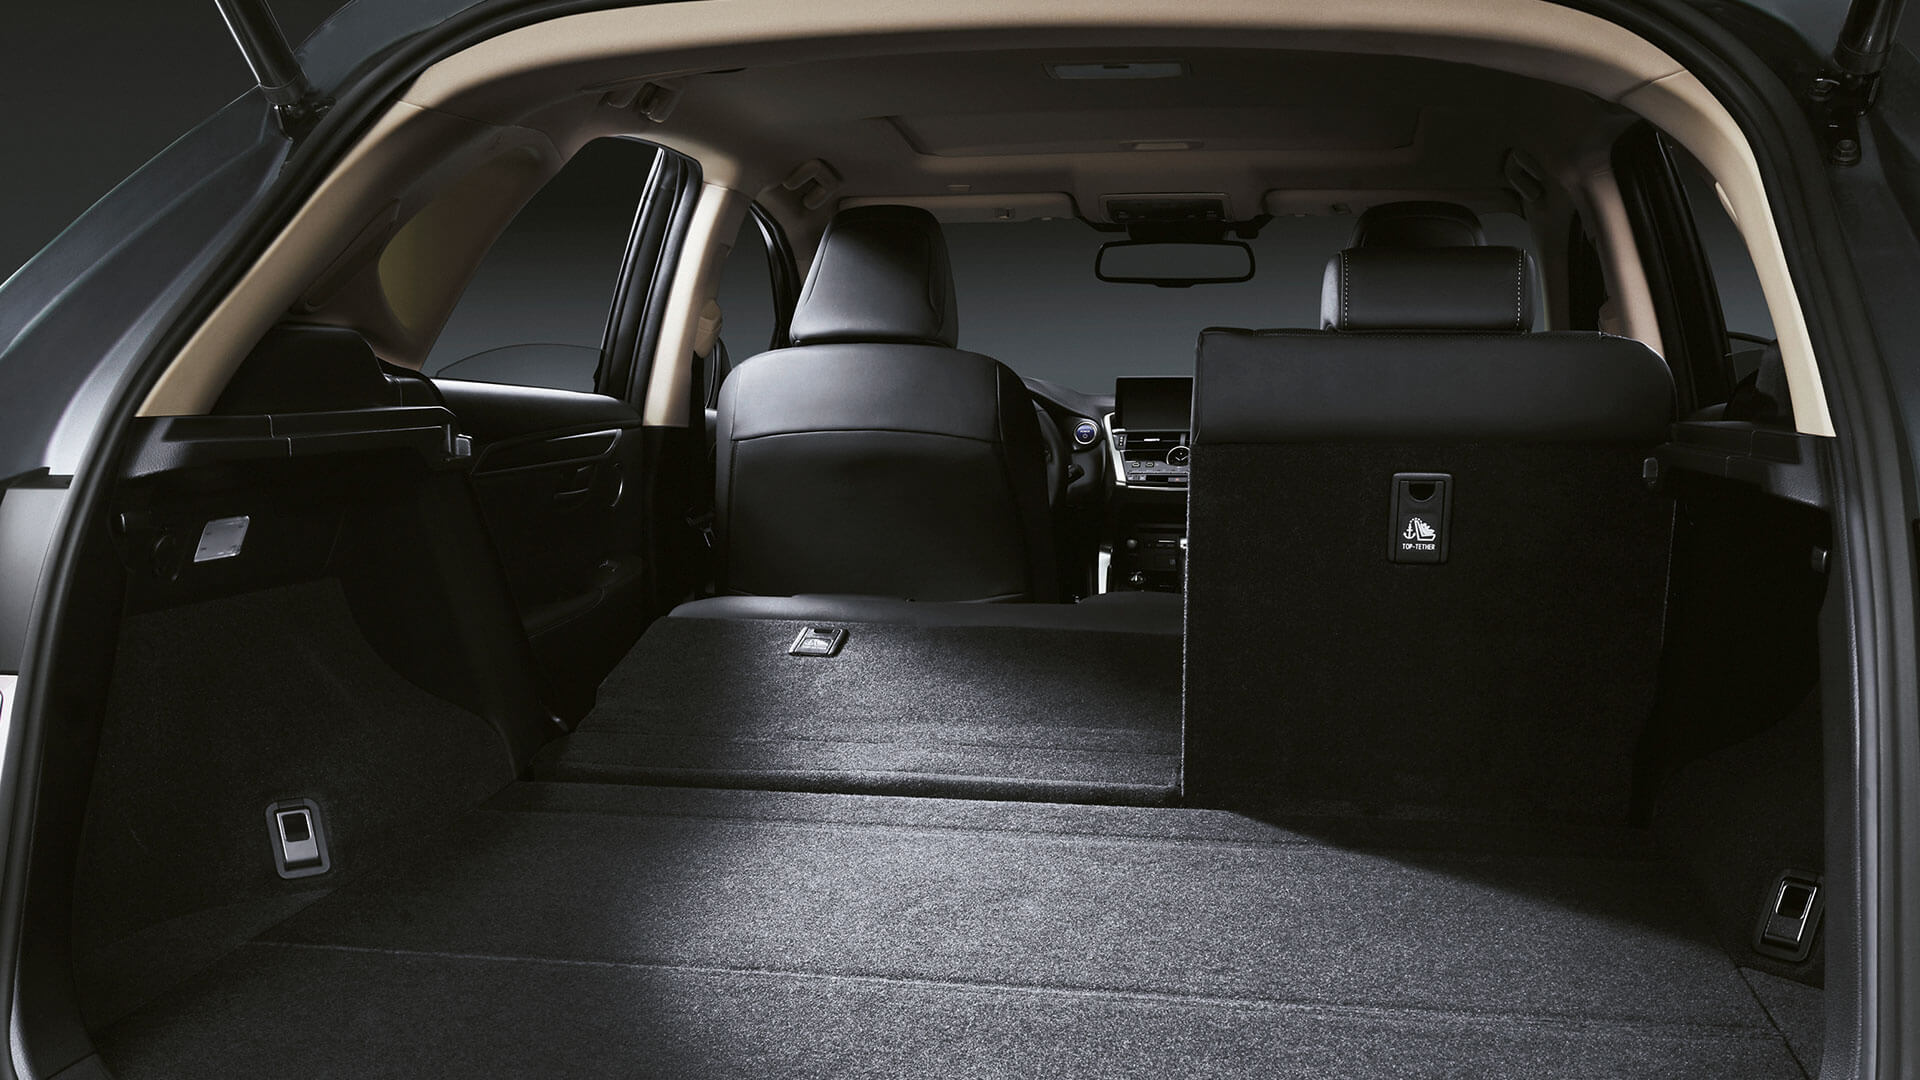 2018 lexus nx my18 features flexible space